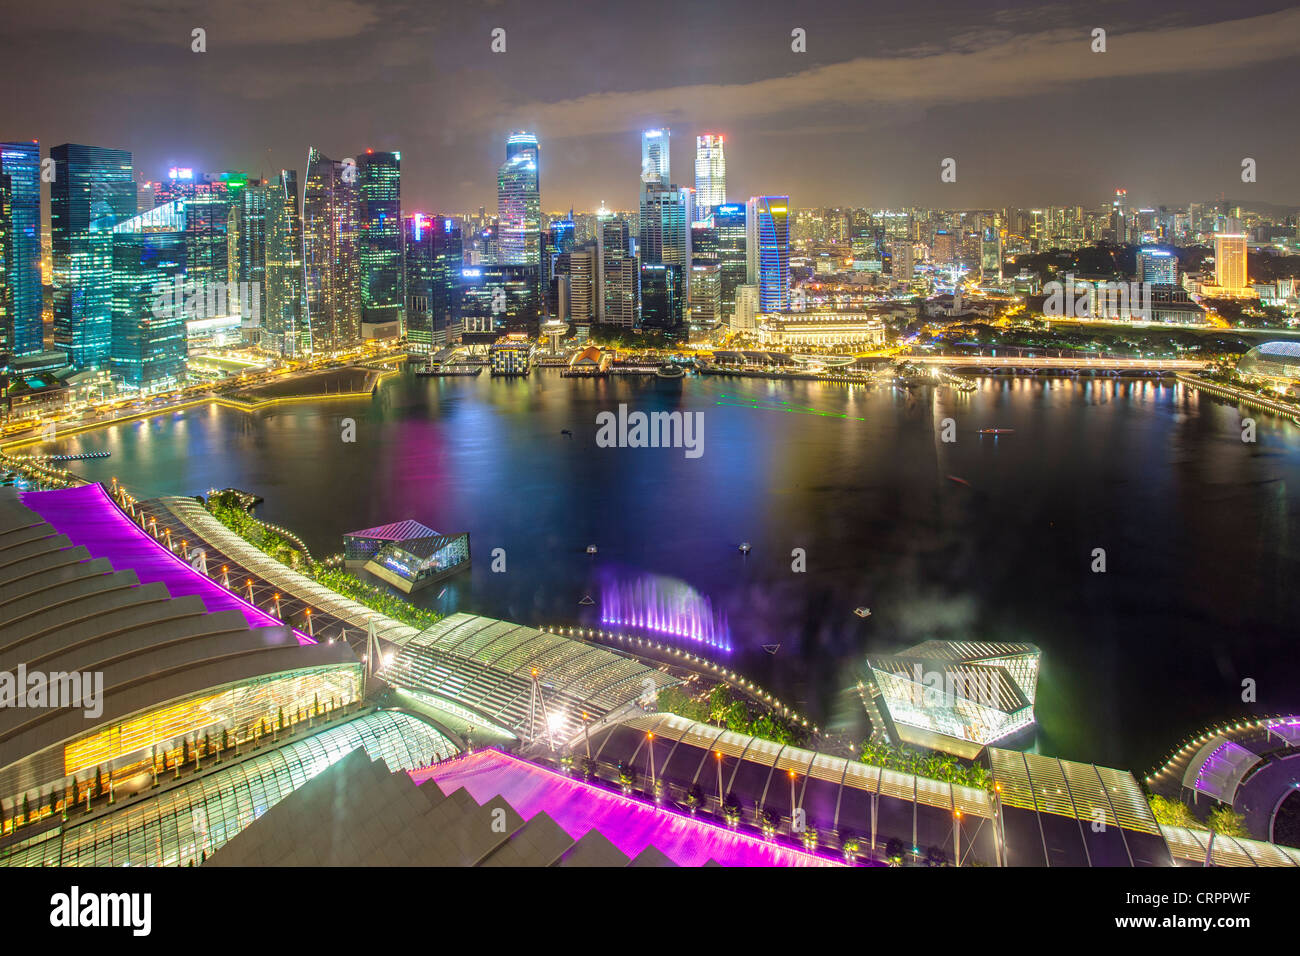 Elevated view over Singapore City Centre and Marina Bay, Singapore, South East Asia - Stock Image